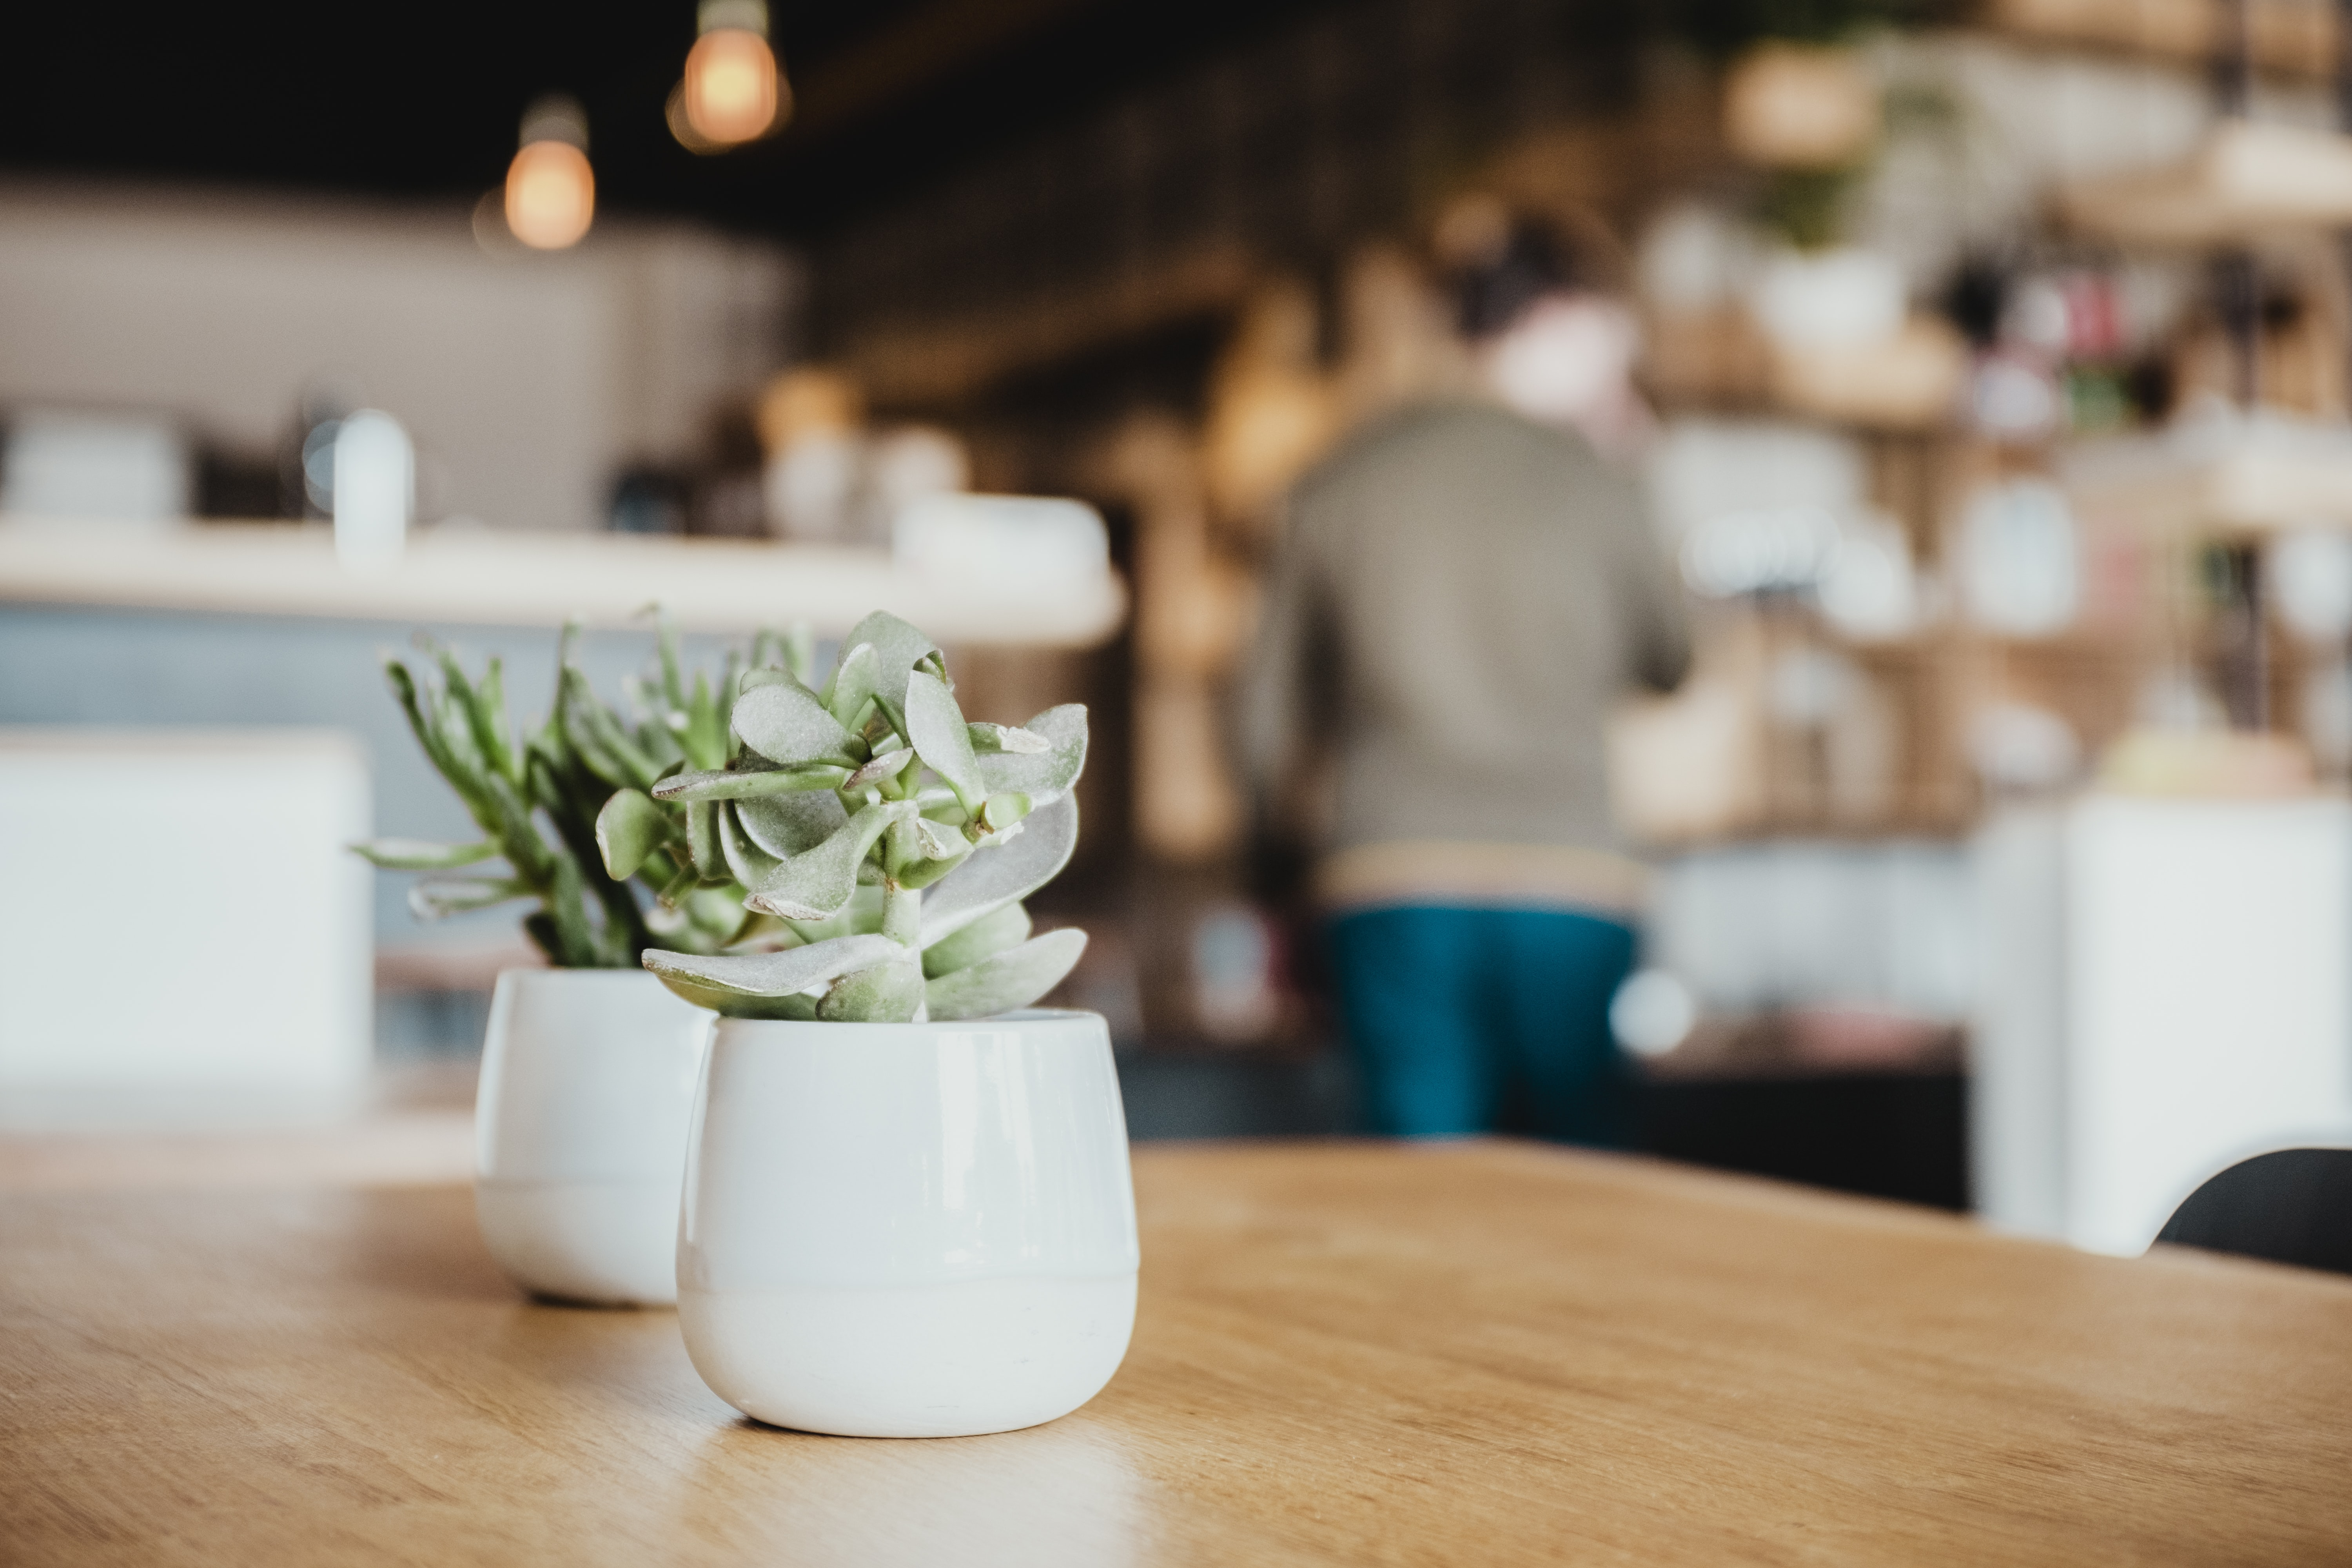 selective focus photography of two white ceramic potted green and white succulents on